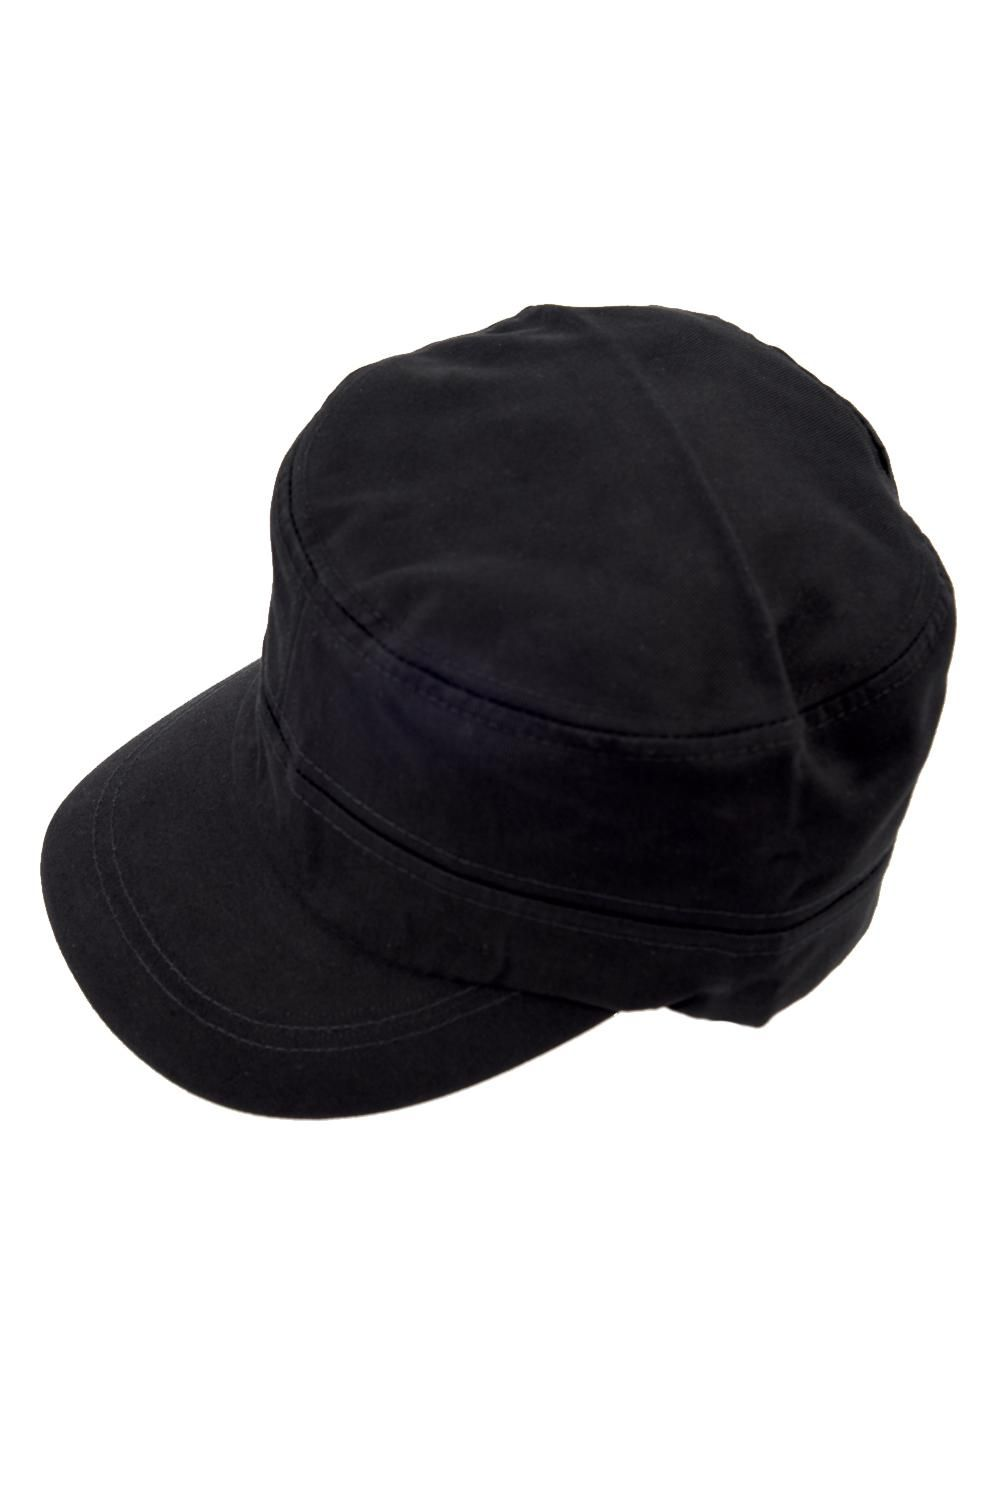 3f7a8c068d37e Black Army Hat Baseball Cap Cotton Urban Hat Mens   Ladies. Yesterday s  price  US  2.51 (2.20 EUR). Today s price  US  2.18 (1.91 EUR). Discount   13%.